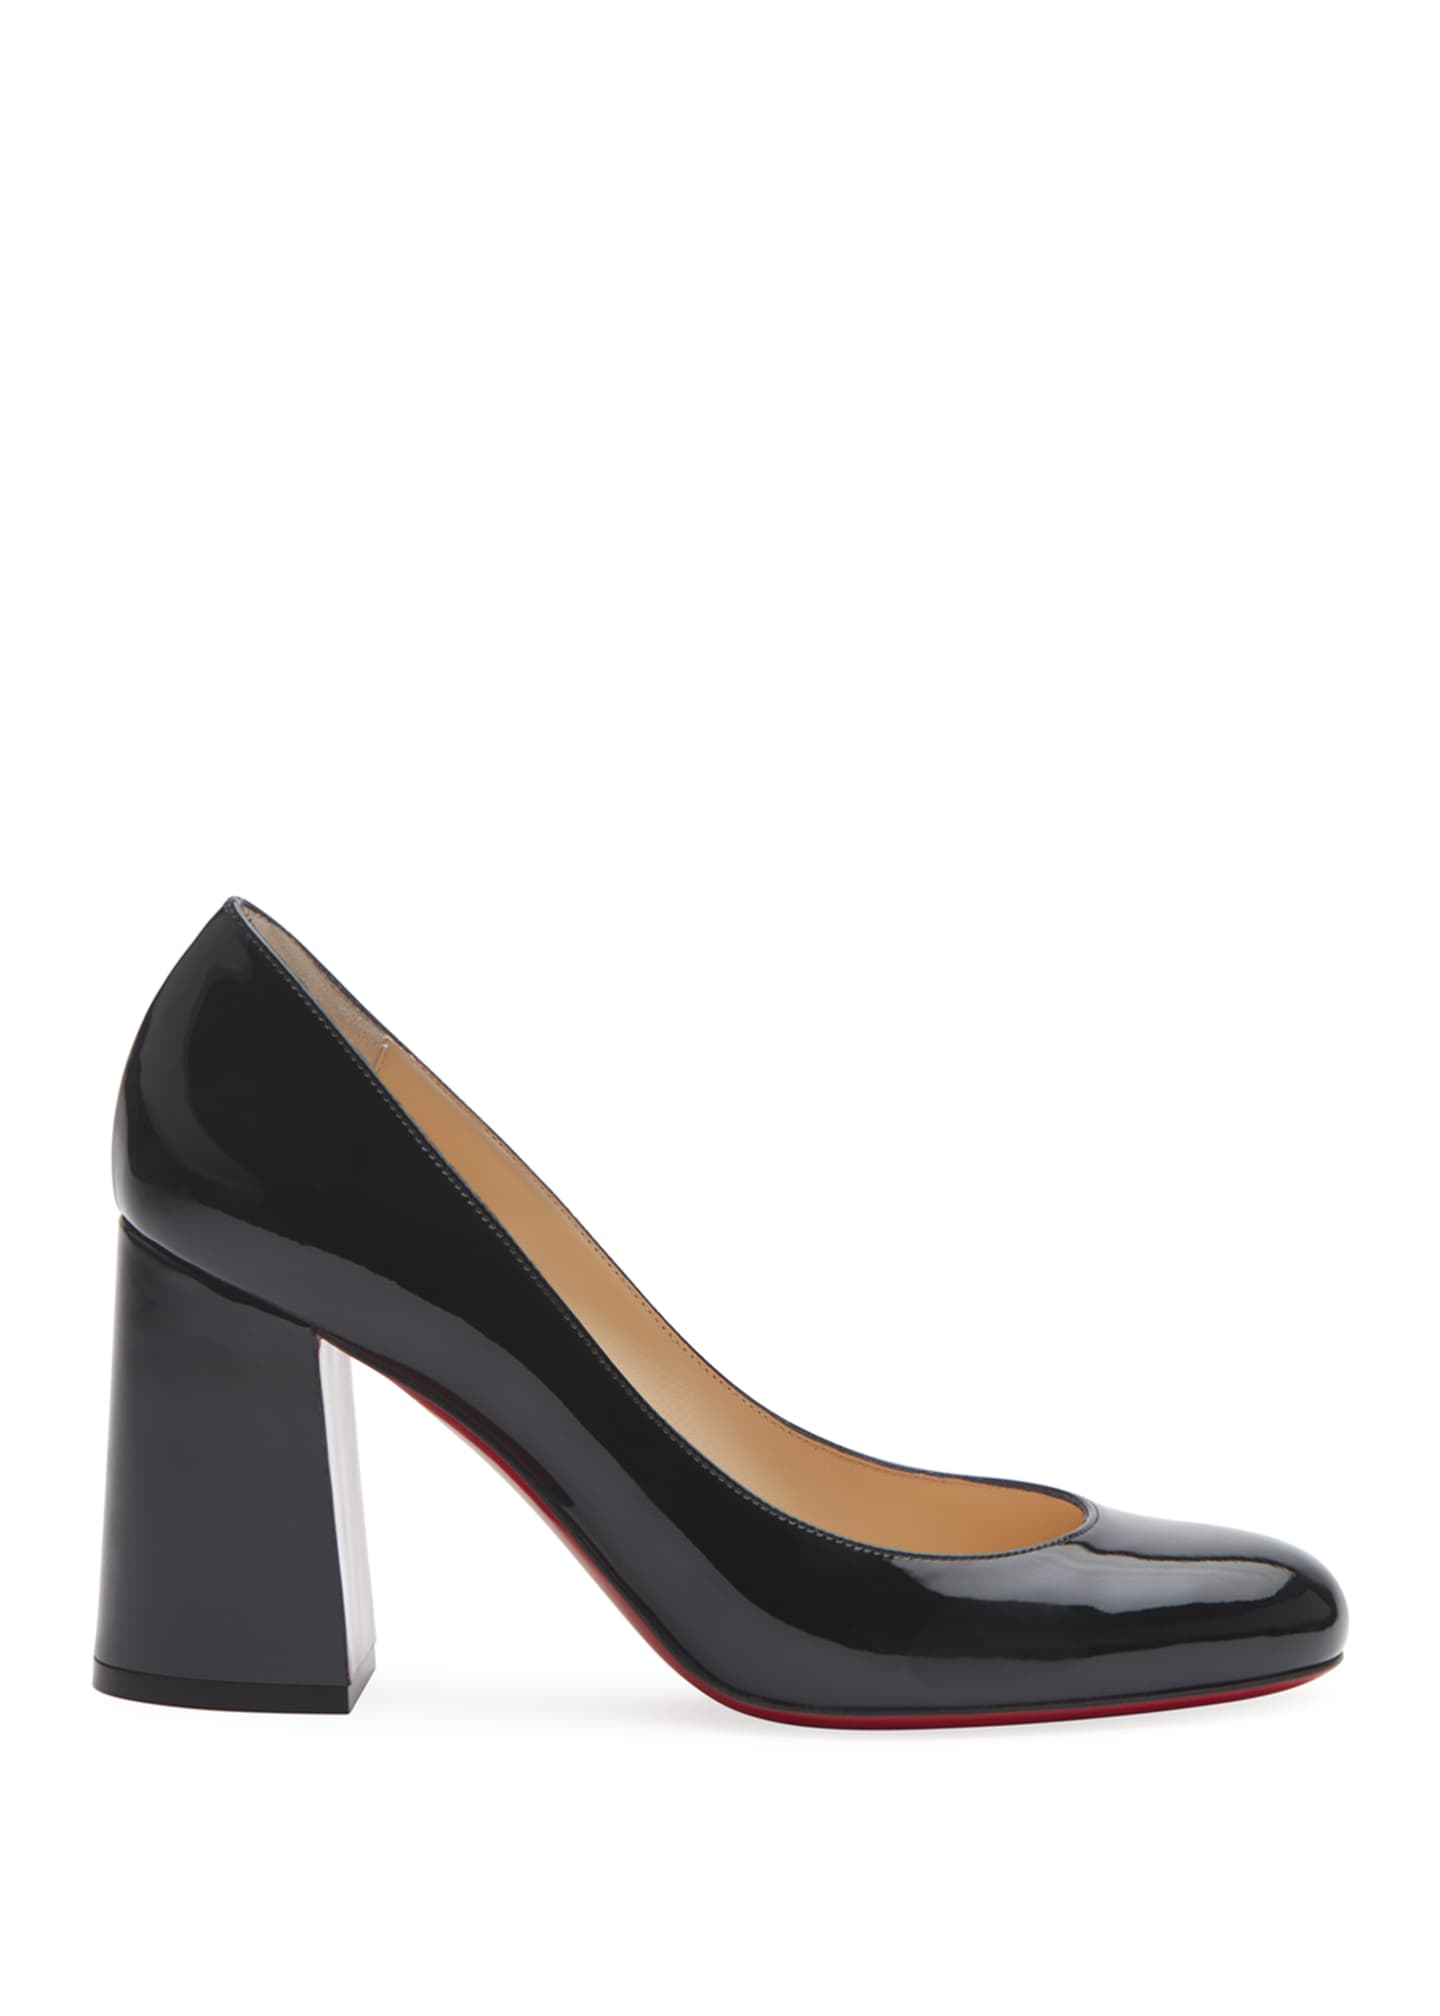 Image 2 of 5: Baobab 85 Patent Red Sole Pumps